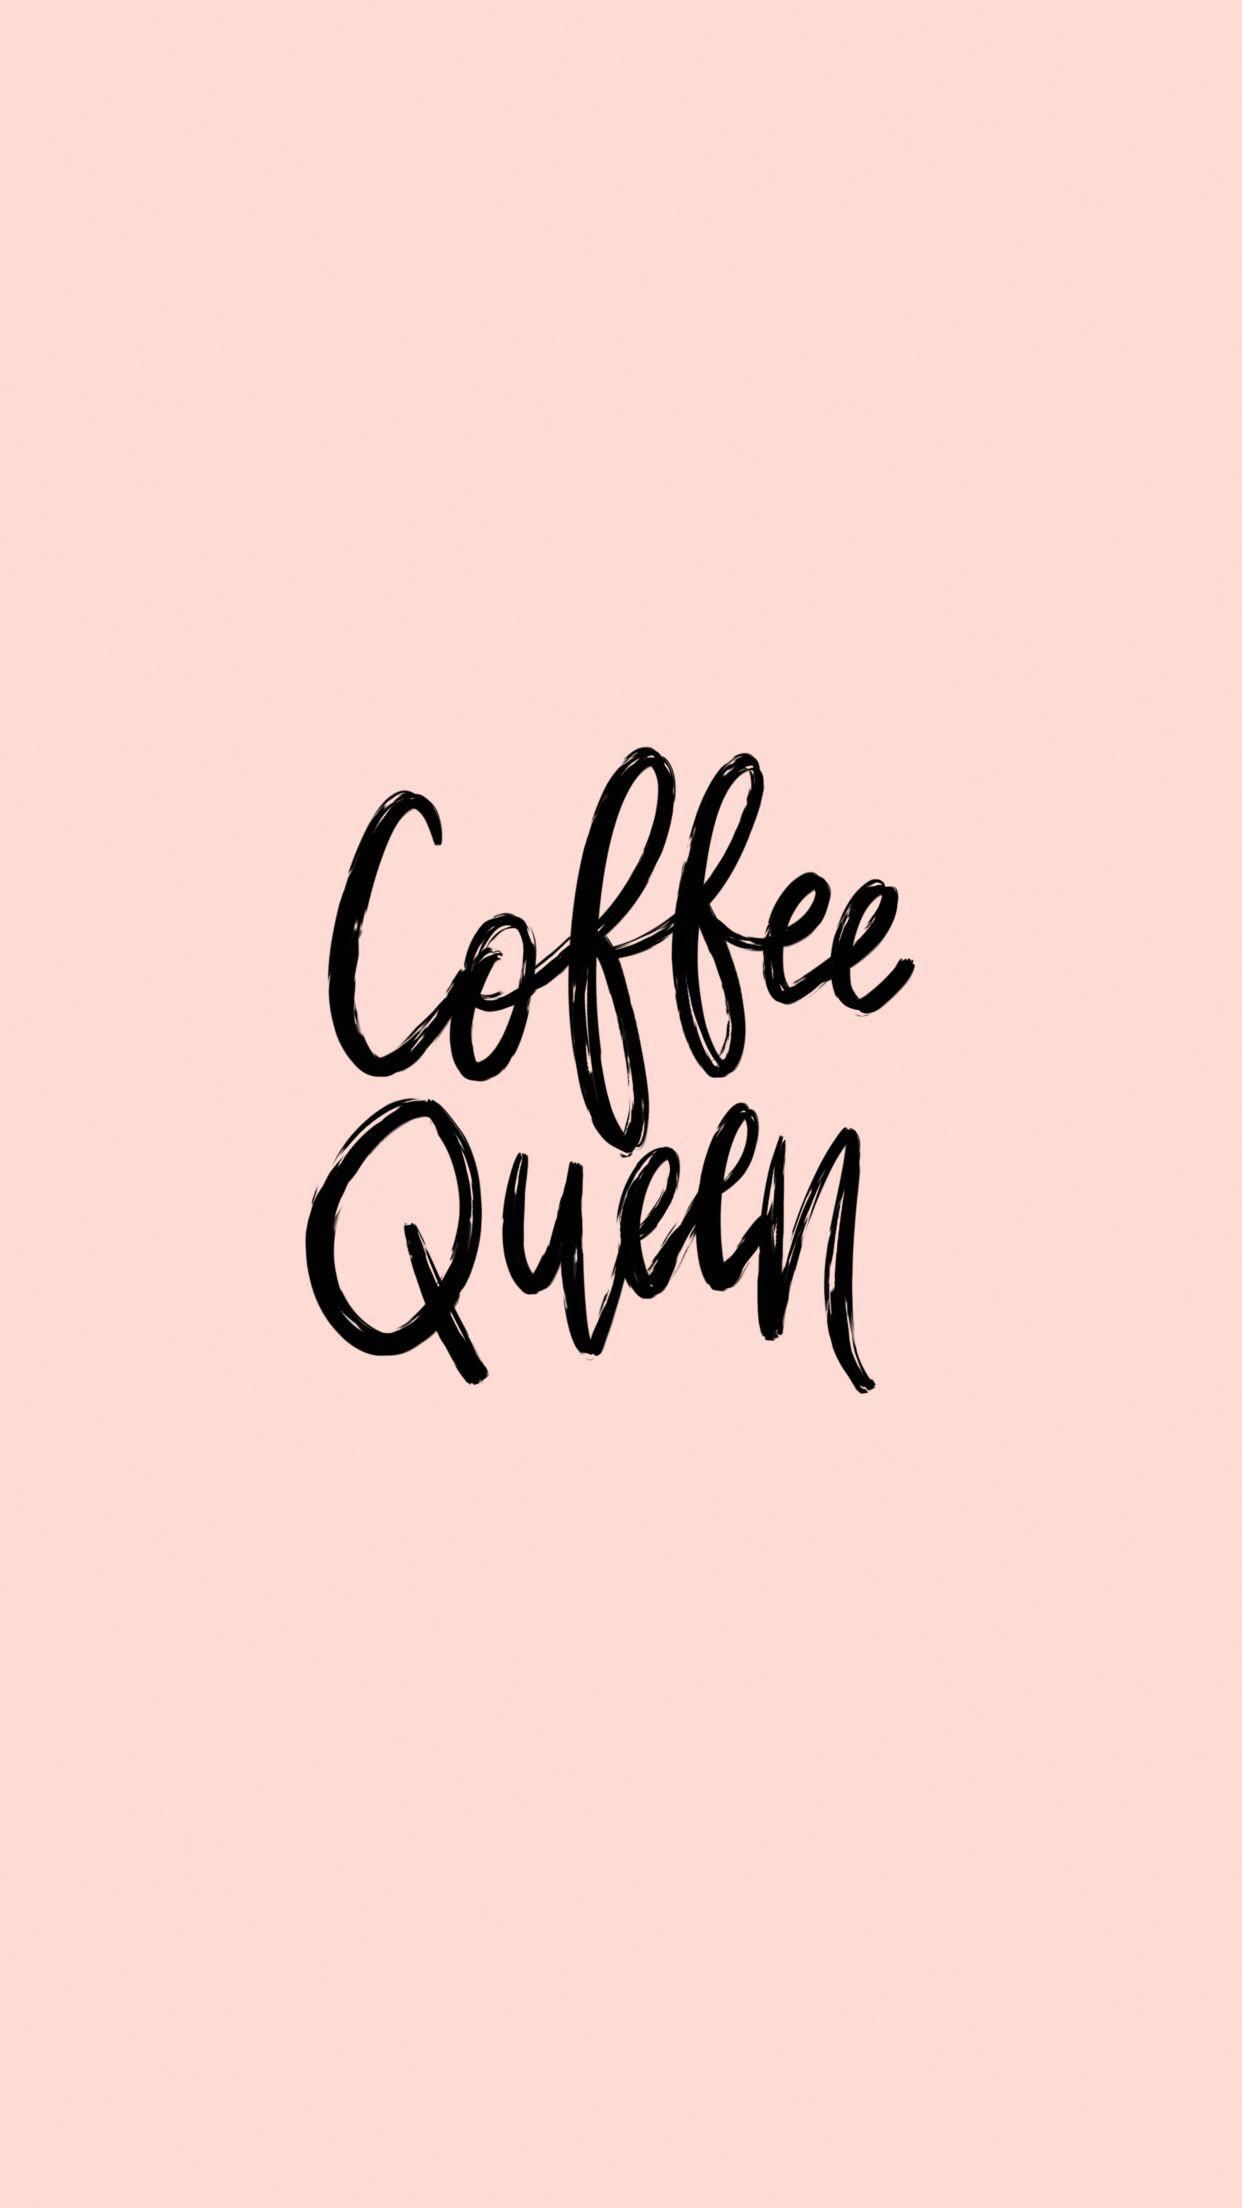 Iphone Wallpapers Free Iphone Wallpaper Coffee Queen Iphonewallpaperquotes Art Drawing Community Explore Discover The Best And The Most Inspiring Art Drawings Ideas Trends From All